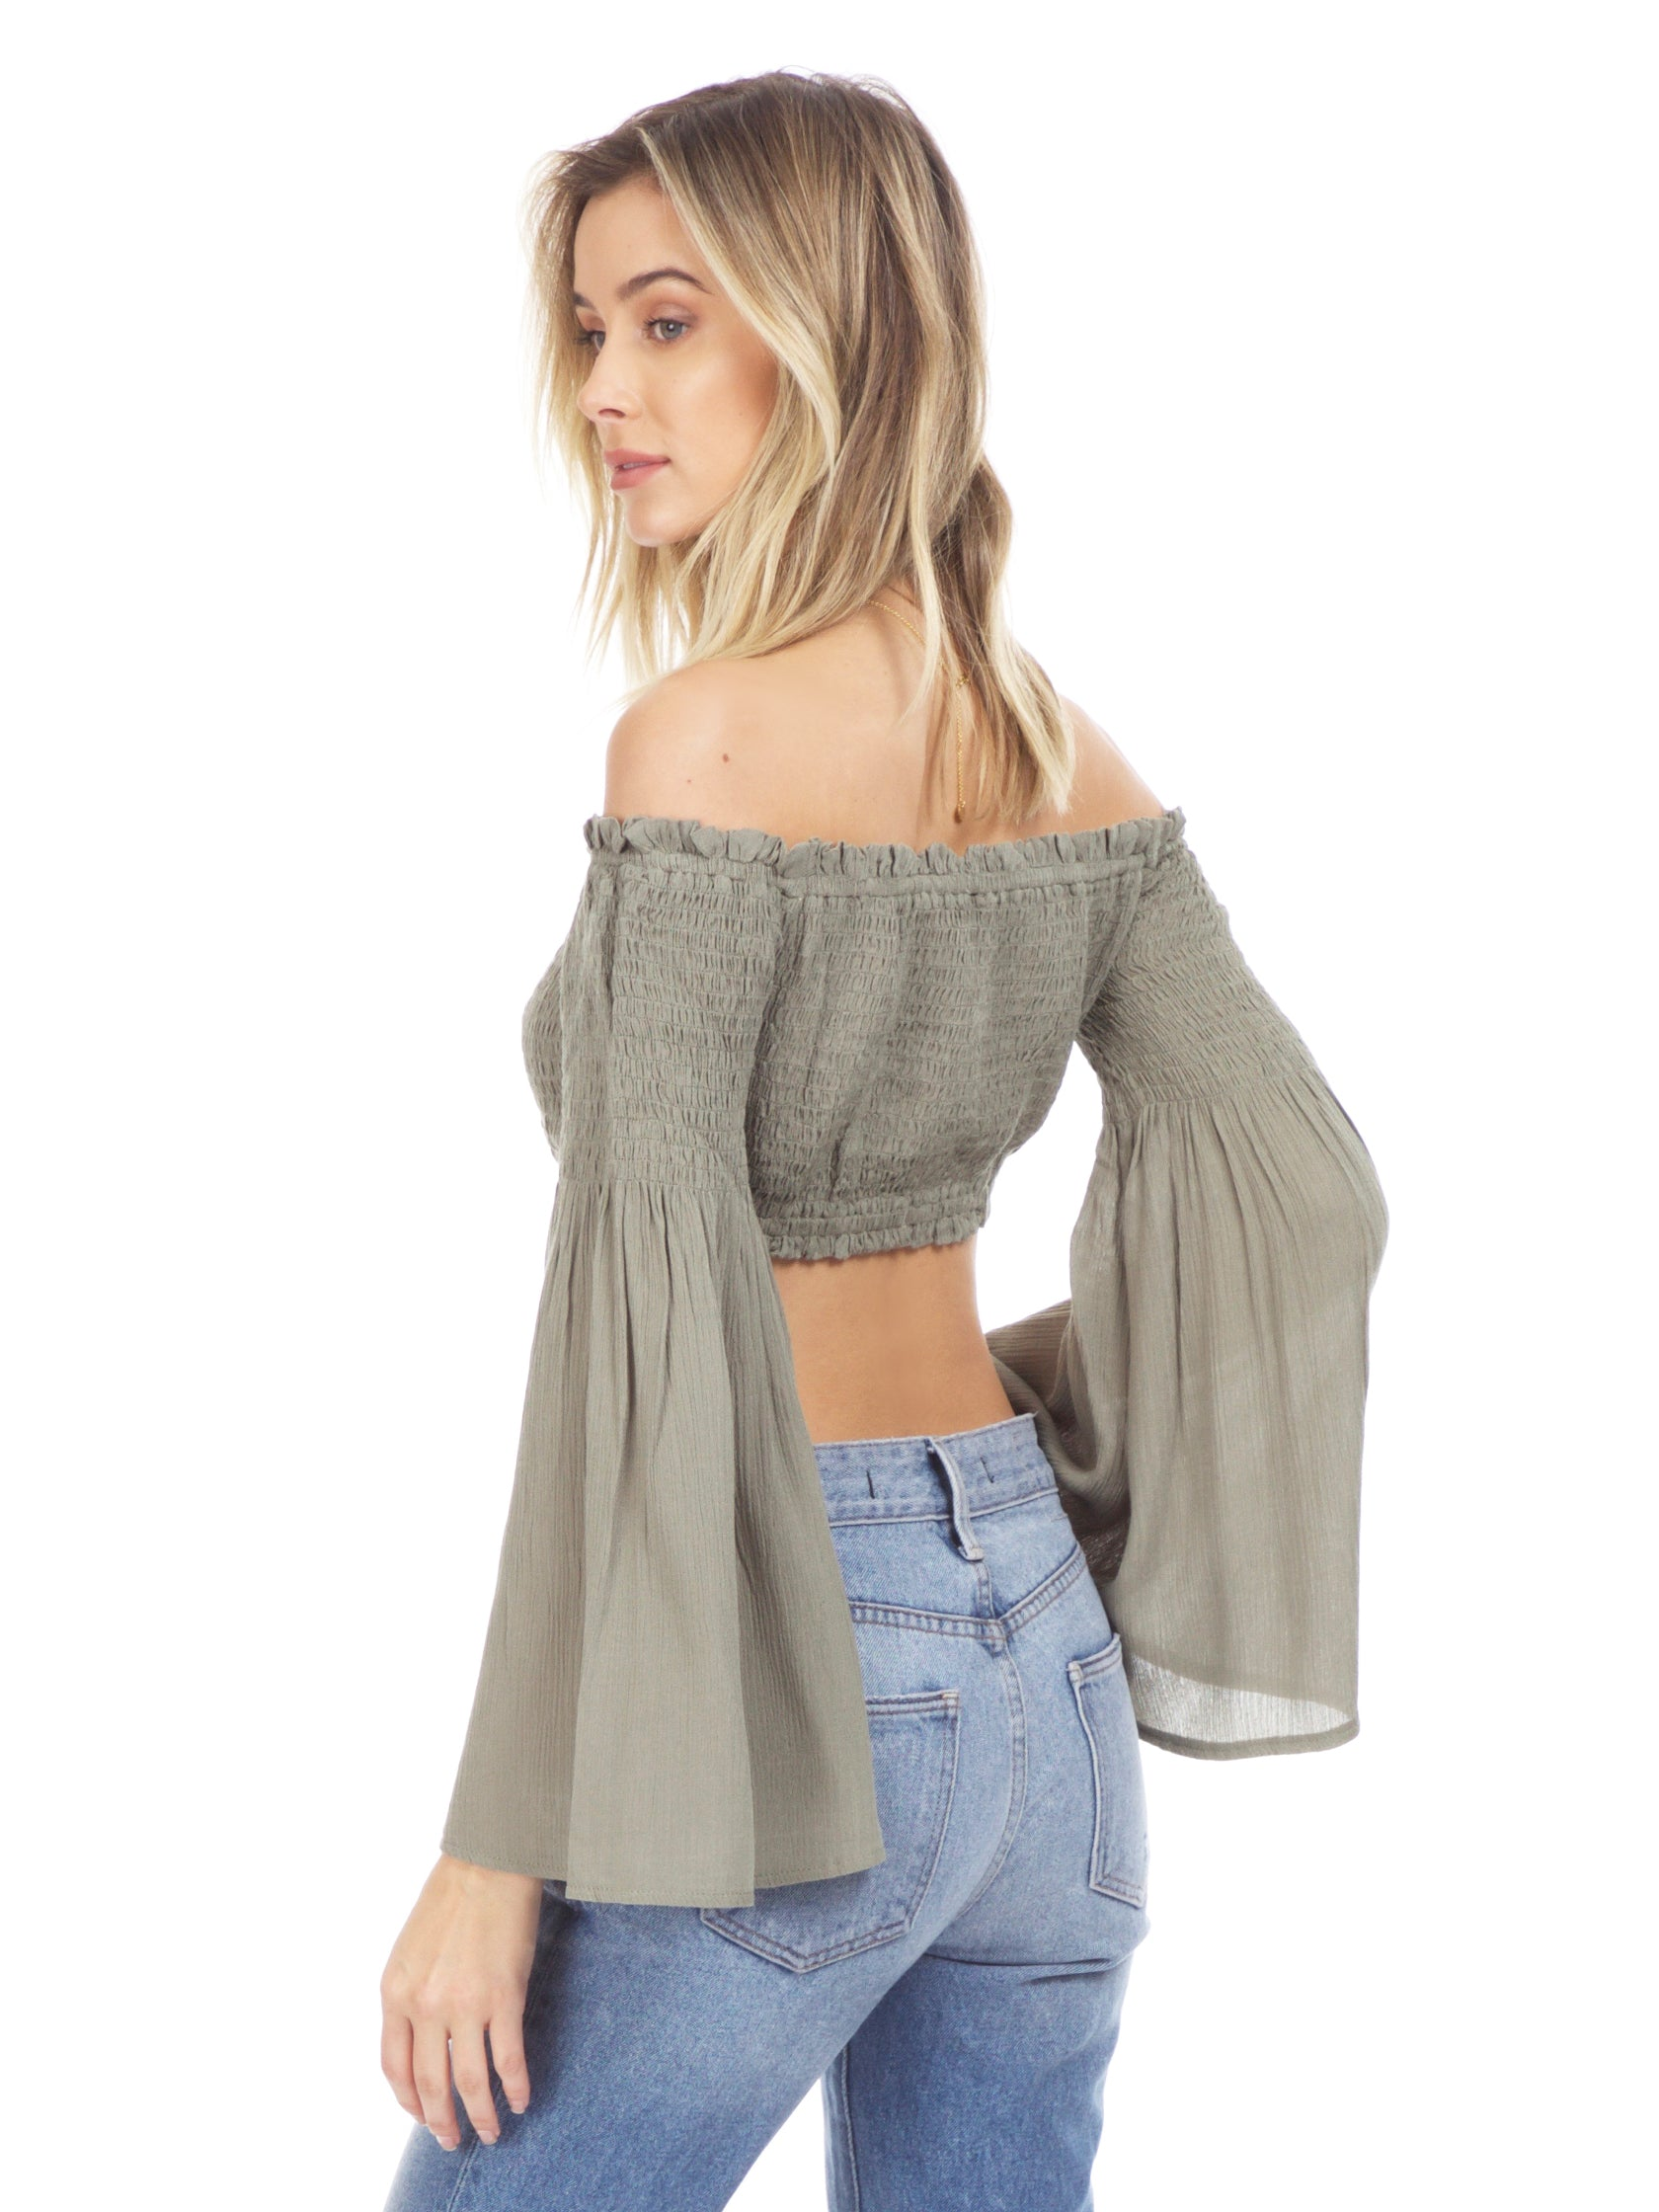 Women wearing a top rental from Sadie & Sage called Olive Crop Top